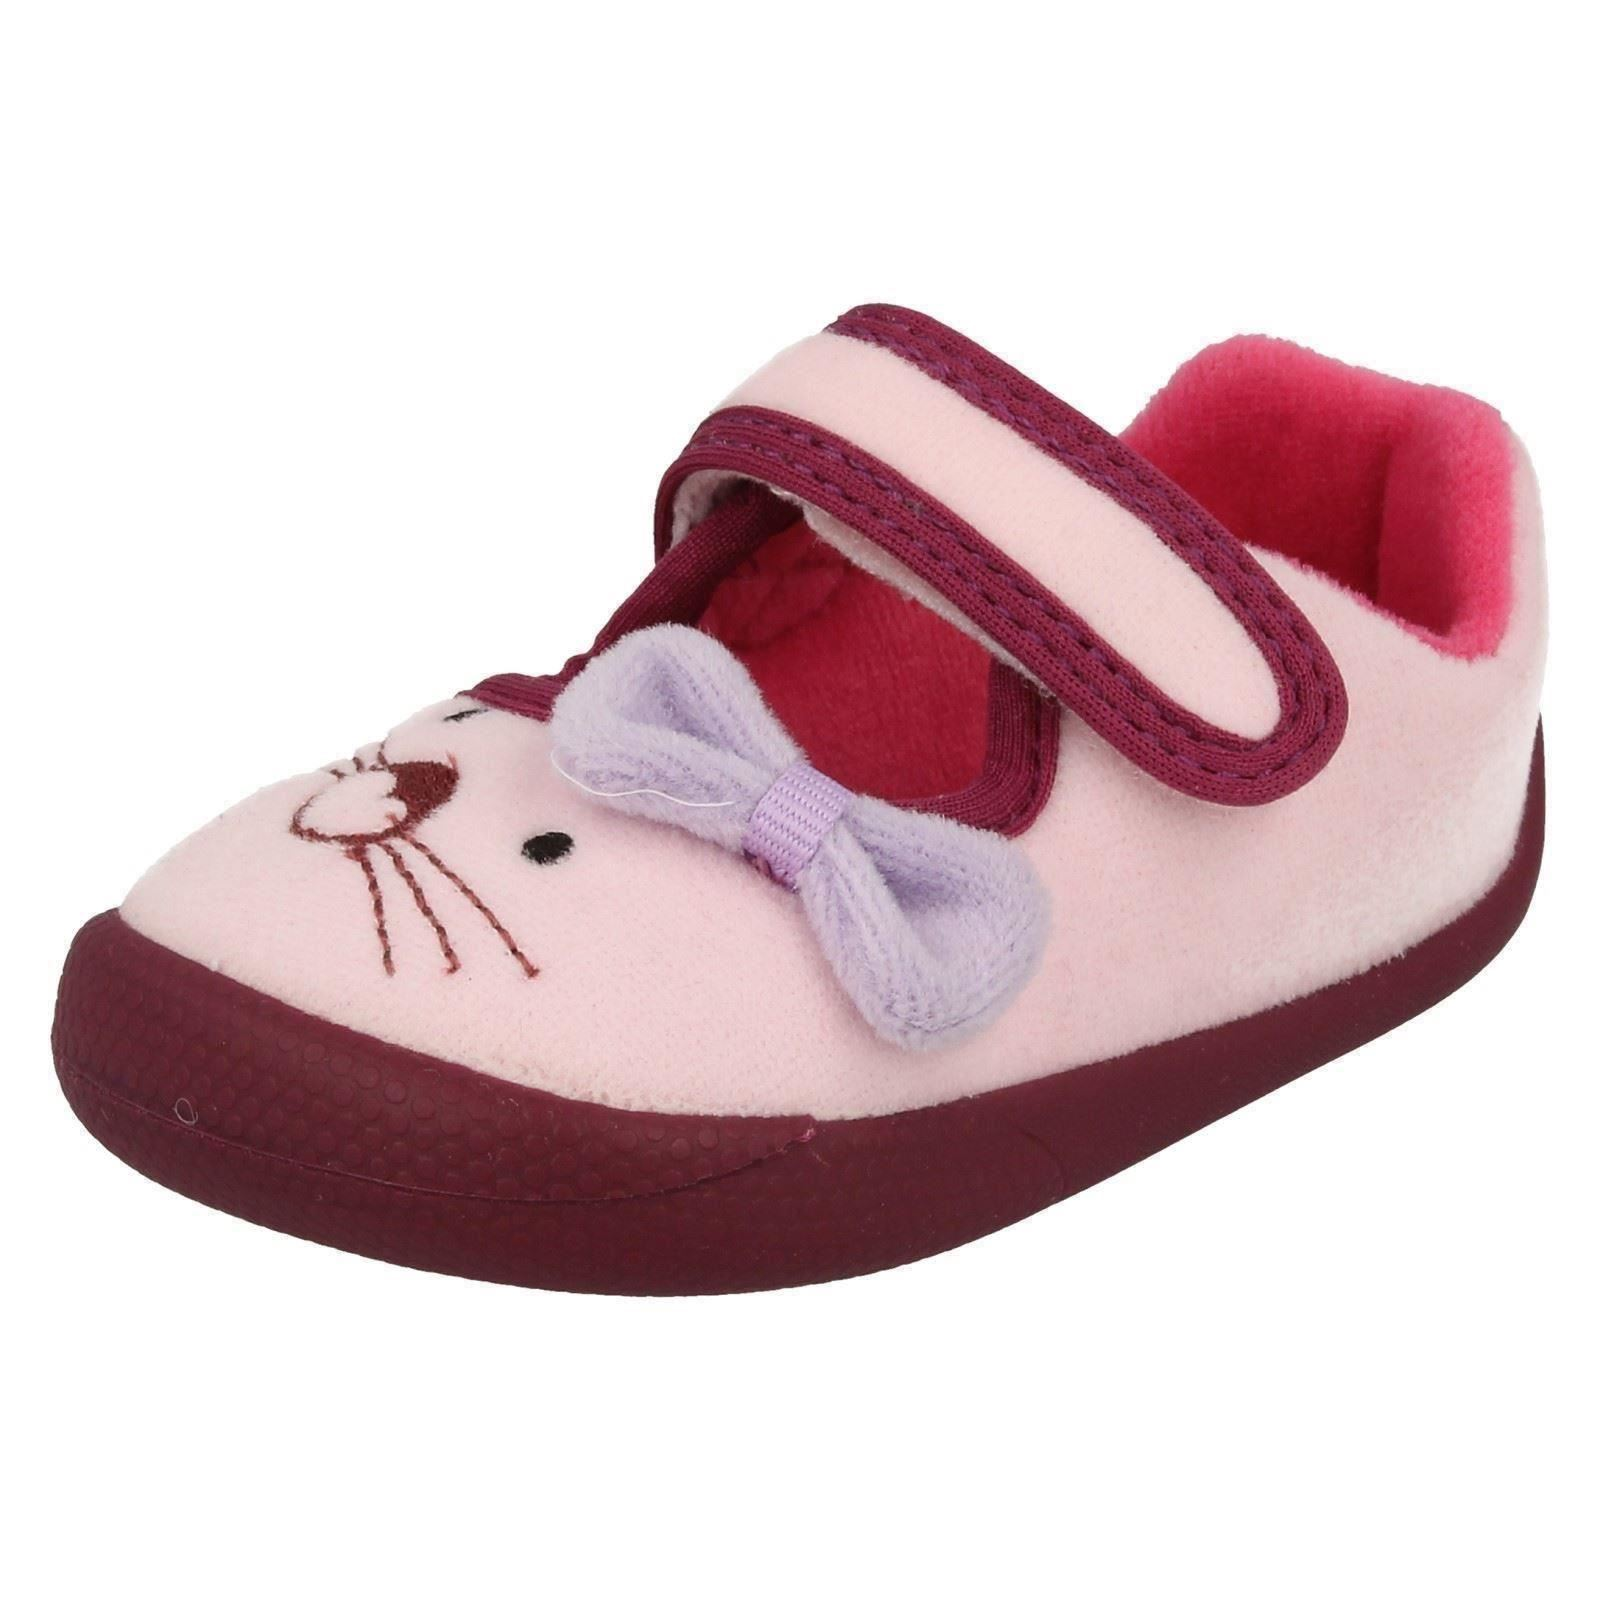 various design new design beautiful in colour Details about Infant Girls Clarks Machine Washable Hook & Loop Textile  Slippers Shilo Candy